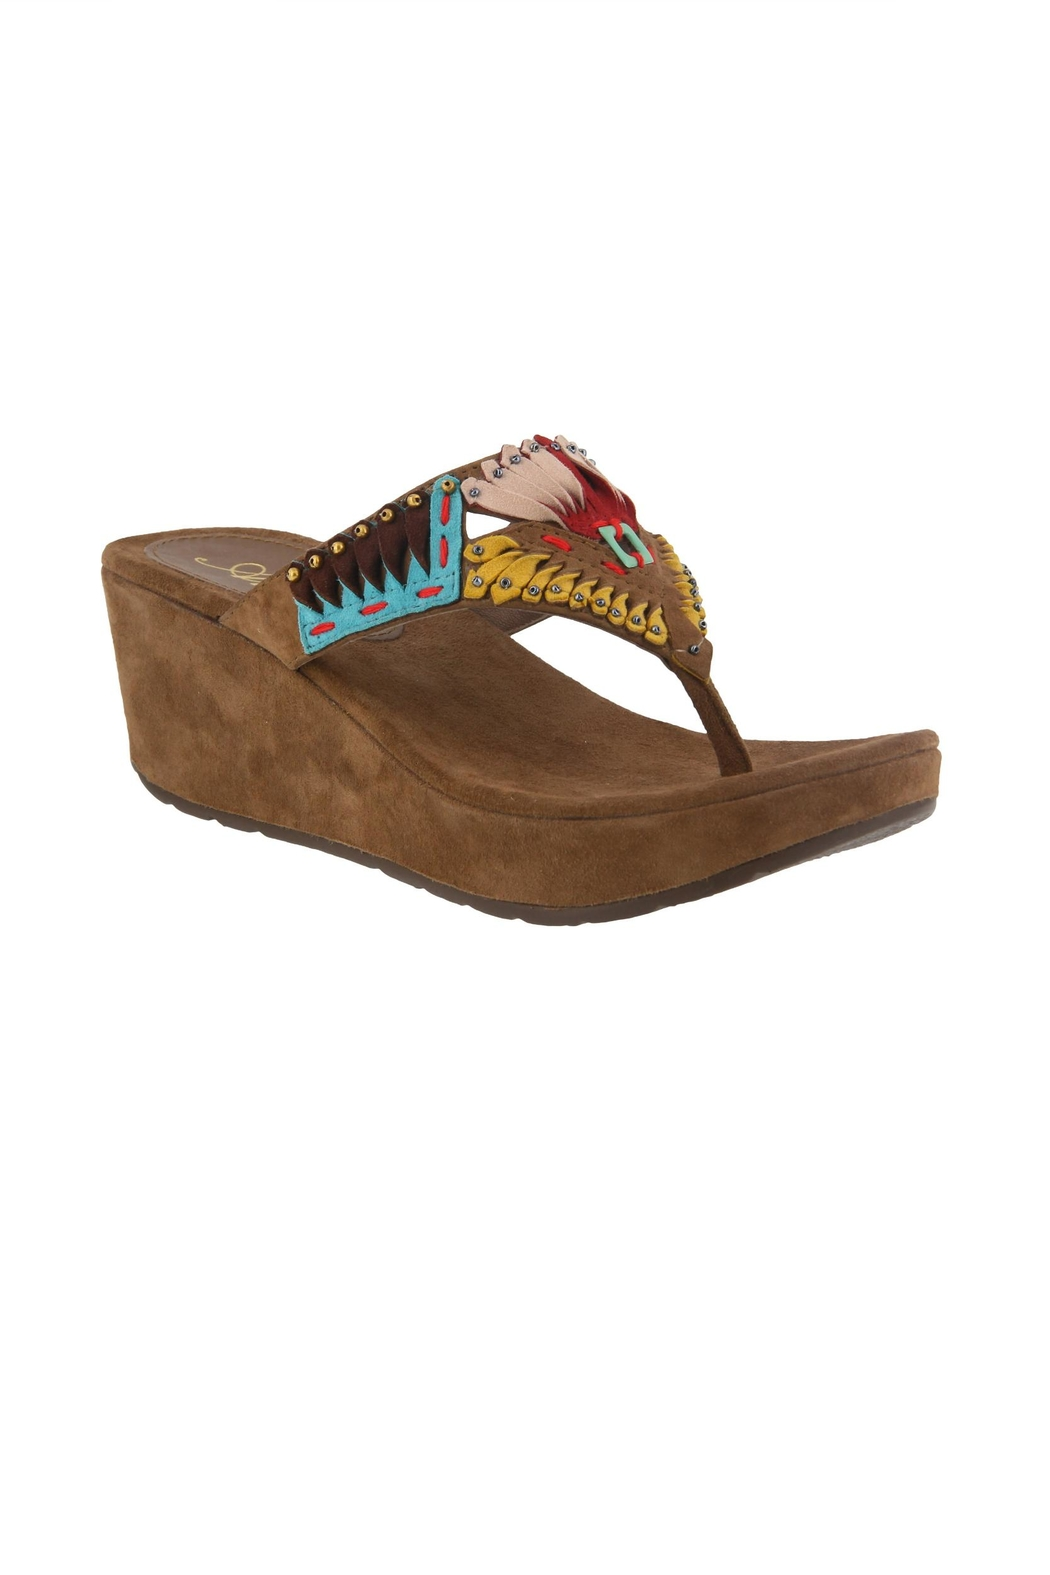 Spring Footwear Headress Bold Sandals - Front Cropped Image